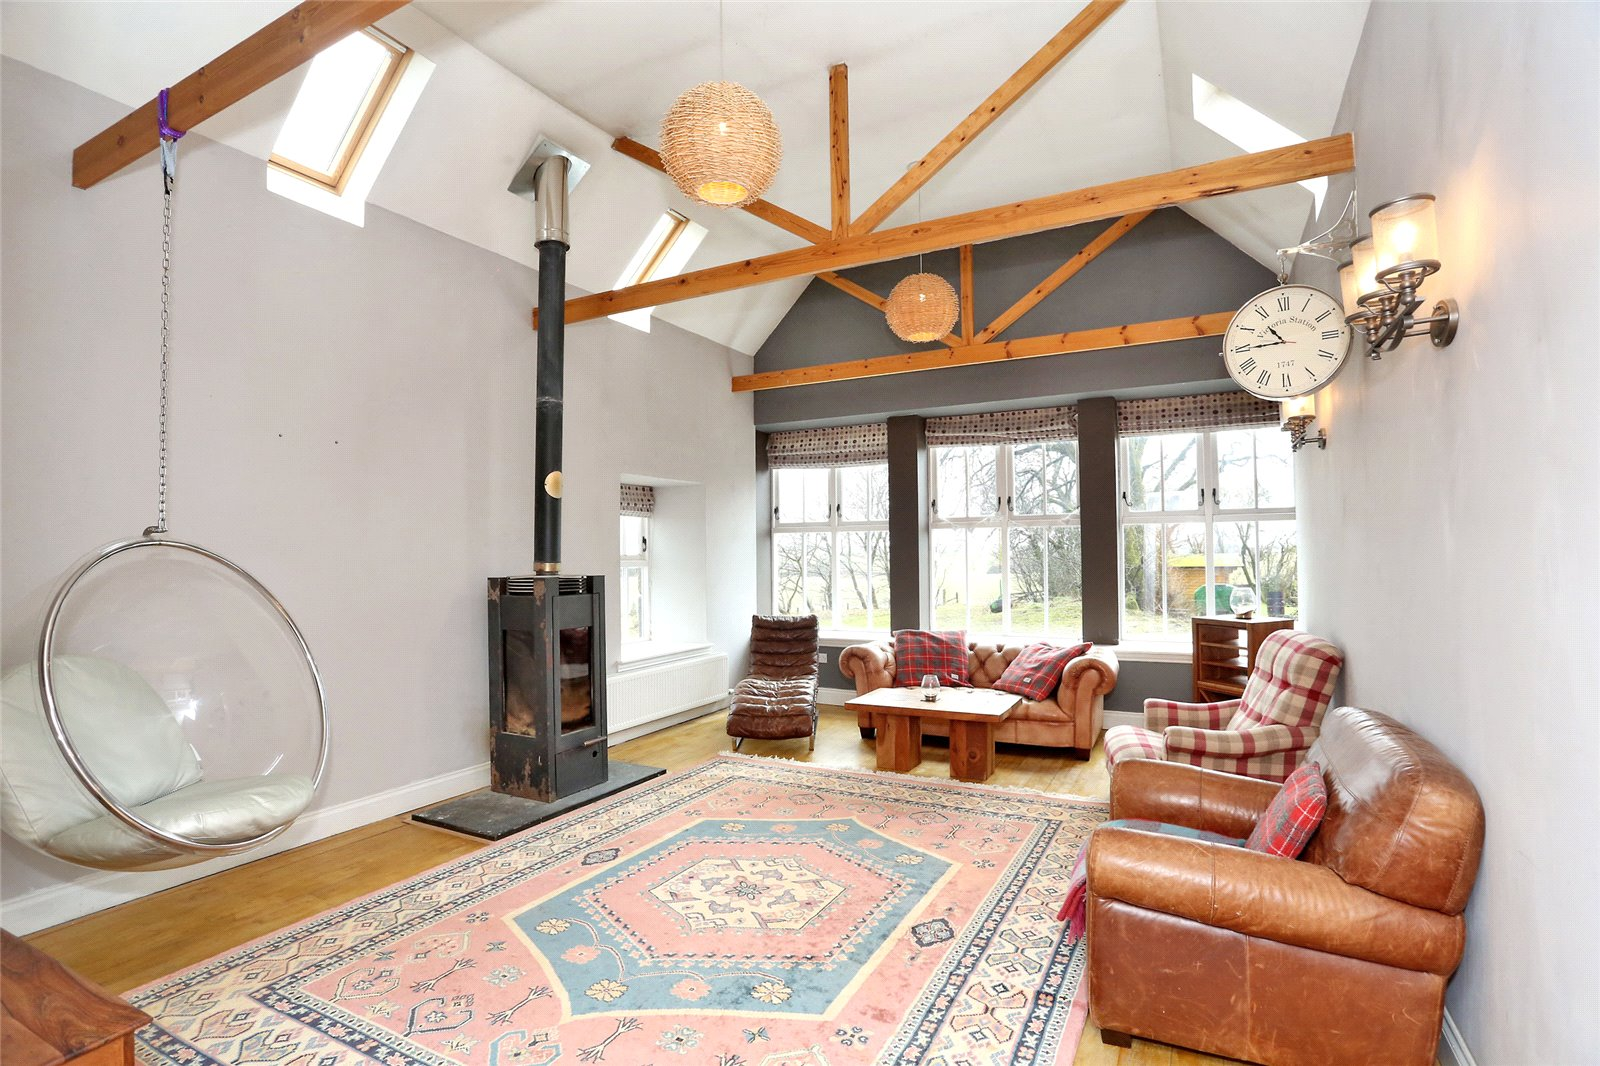 Traditional meets modern in 'Northseat Steading'